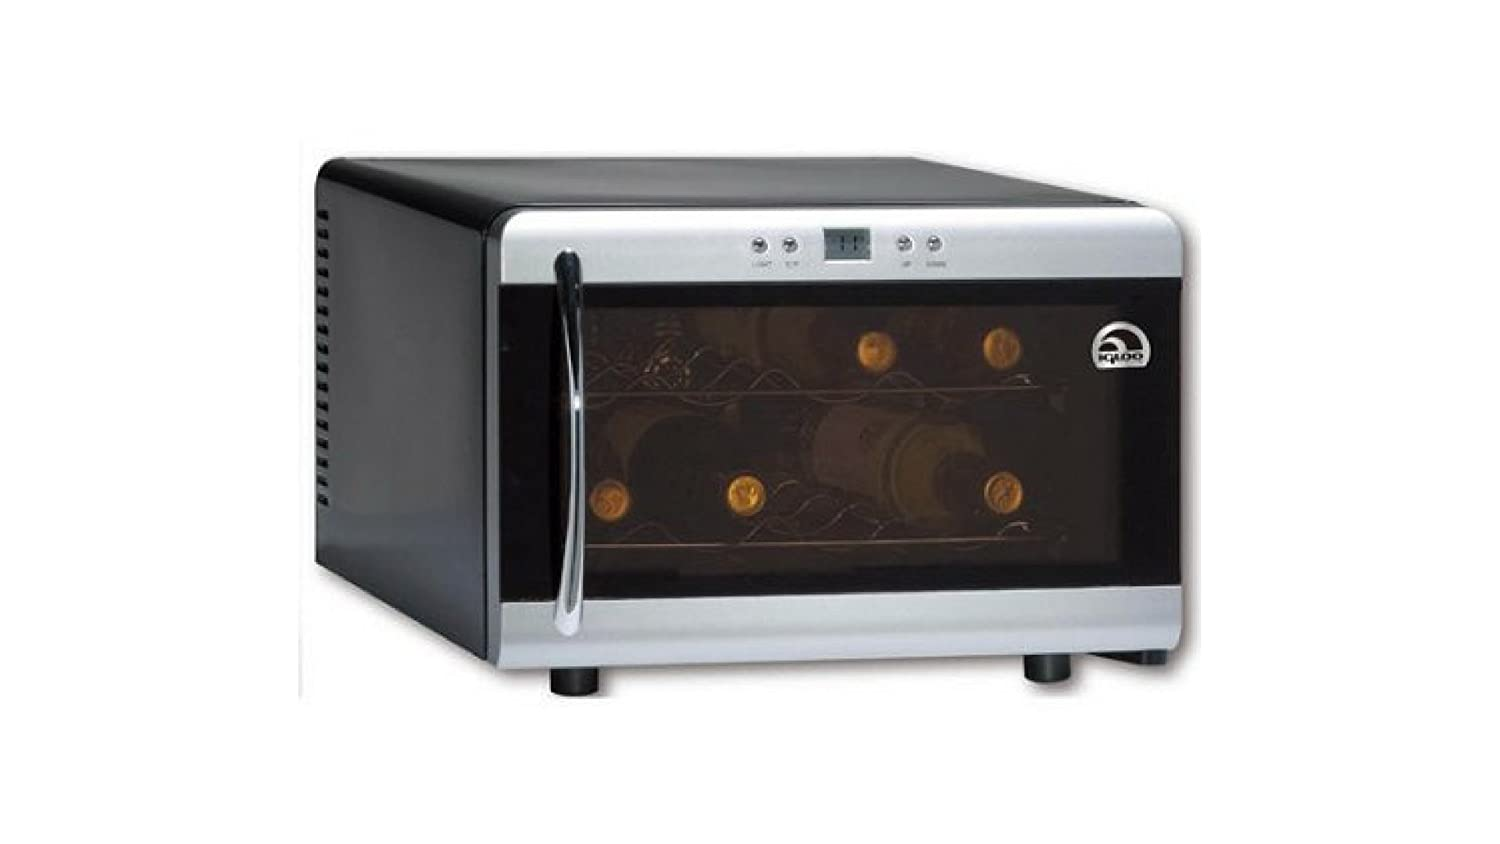 Counter-top Wine Cooler with Digital Temperature Controls 8 Bottle Capacity in Silver Igloo